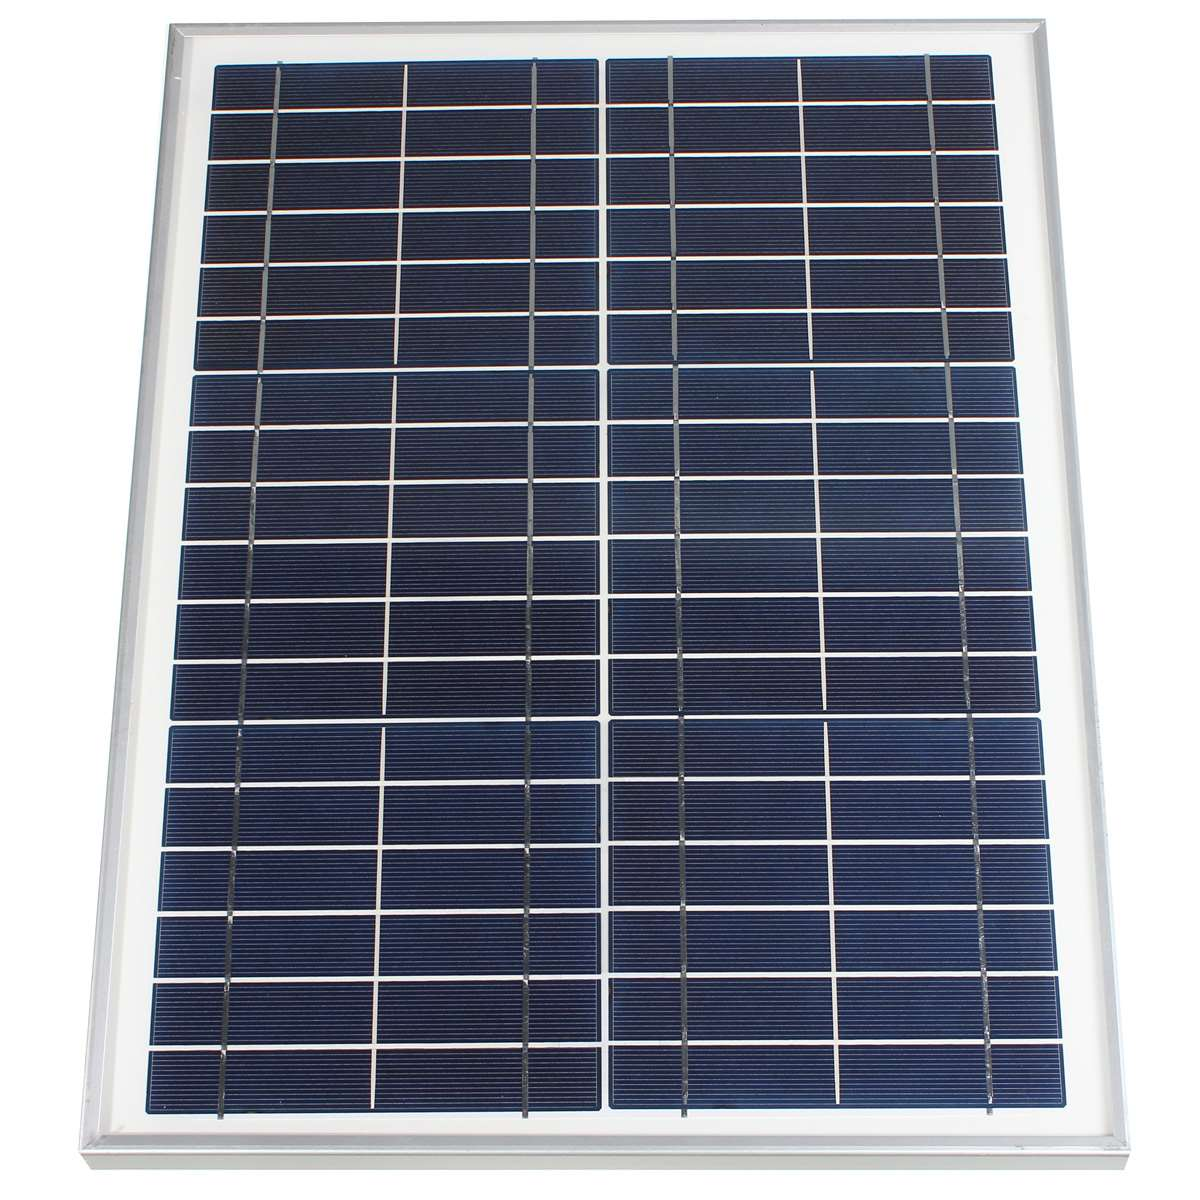 12V 20W Polycrystalline Stored Energy Power poly Solar Panel Module System Solar Cells Charger+300cm Cable+2x Alligator Clips